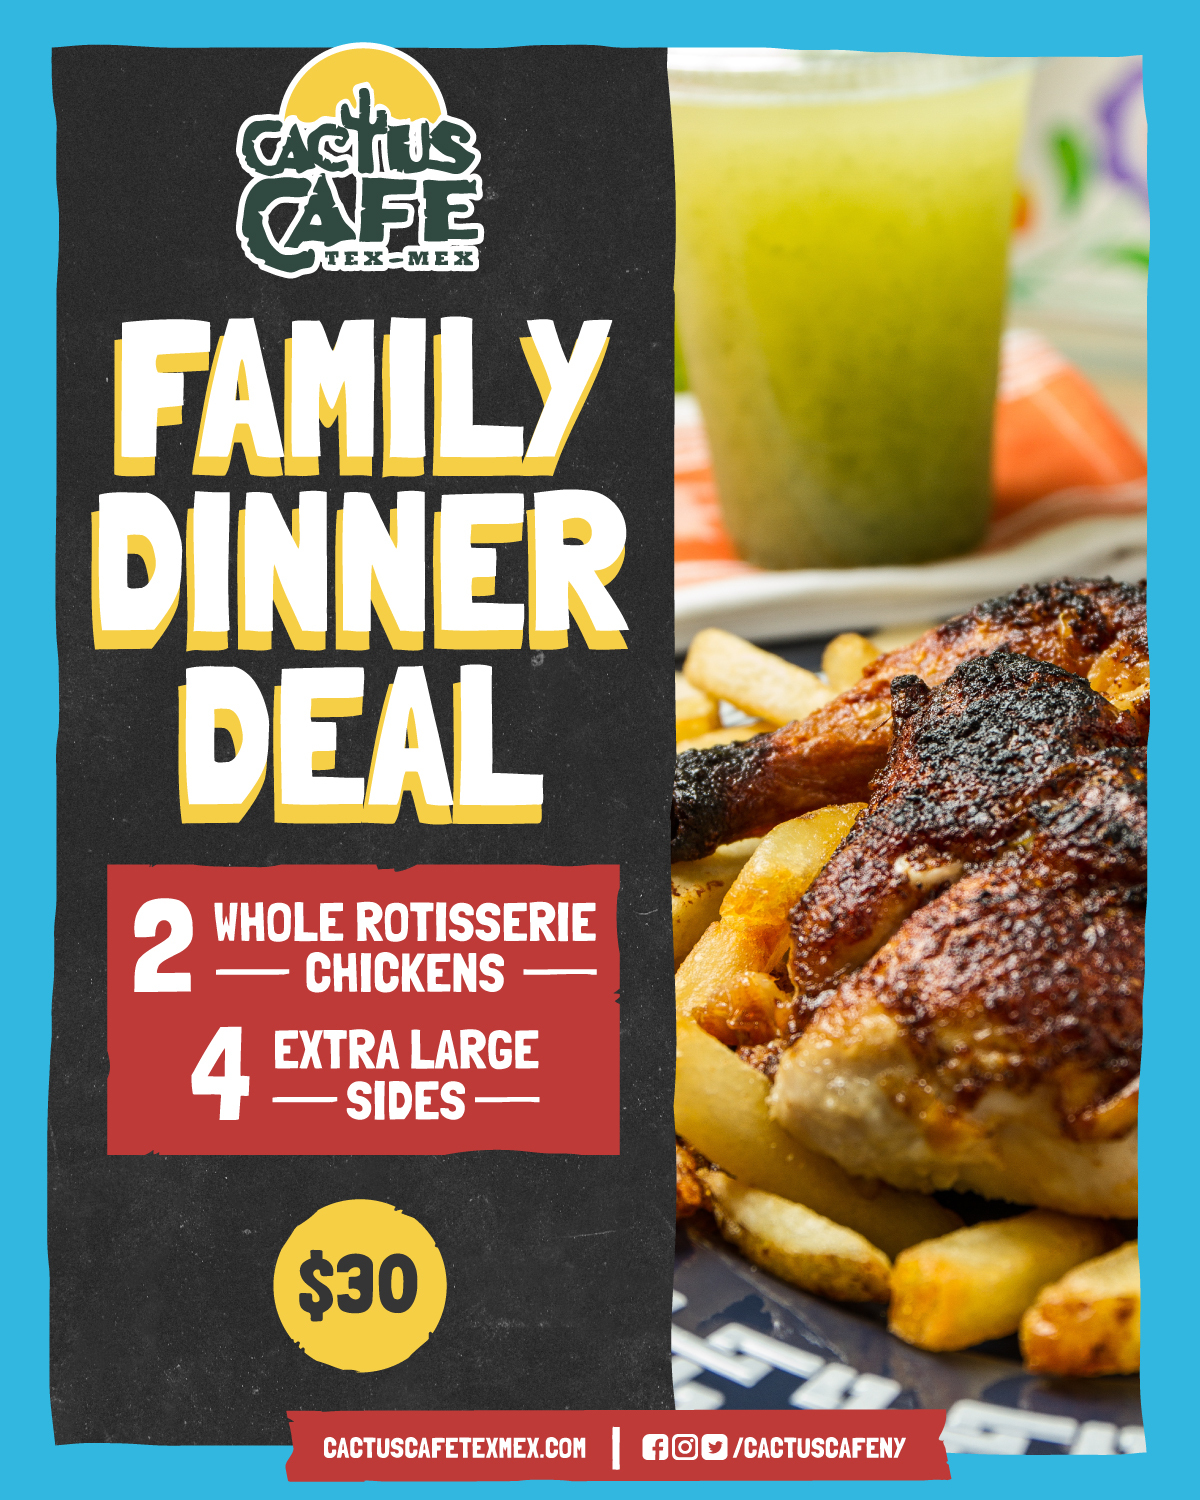 Flyer for Family Dinner Deal. 2 whole rotisserie chickens, 4 extra large sides for $30